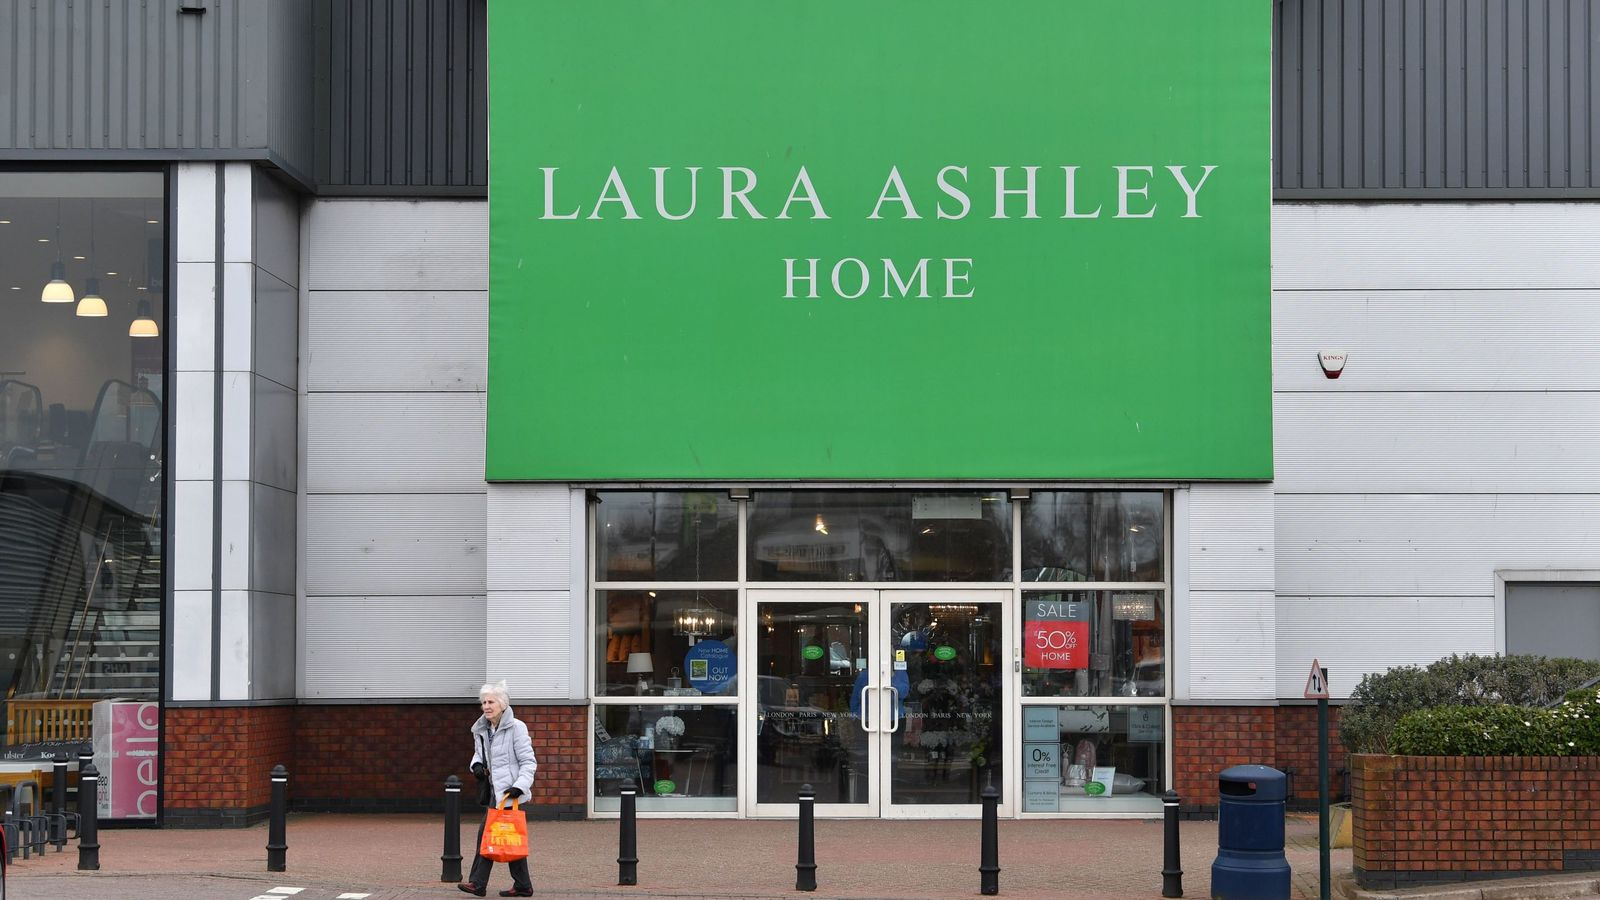 Vulture funds pick over Laura Ashley remains